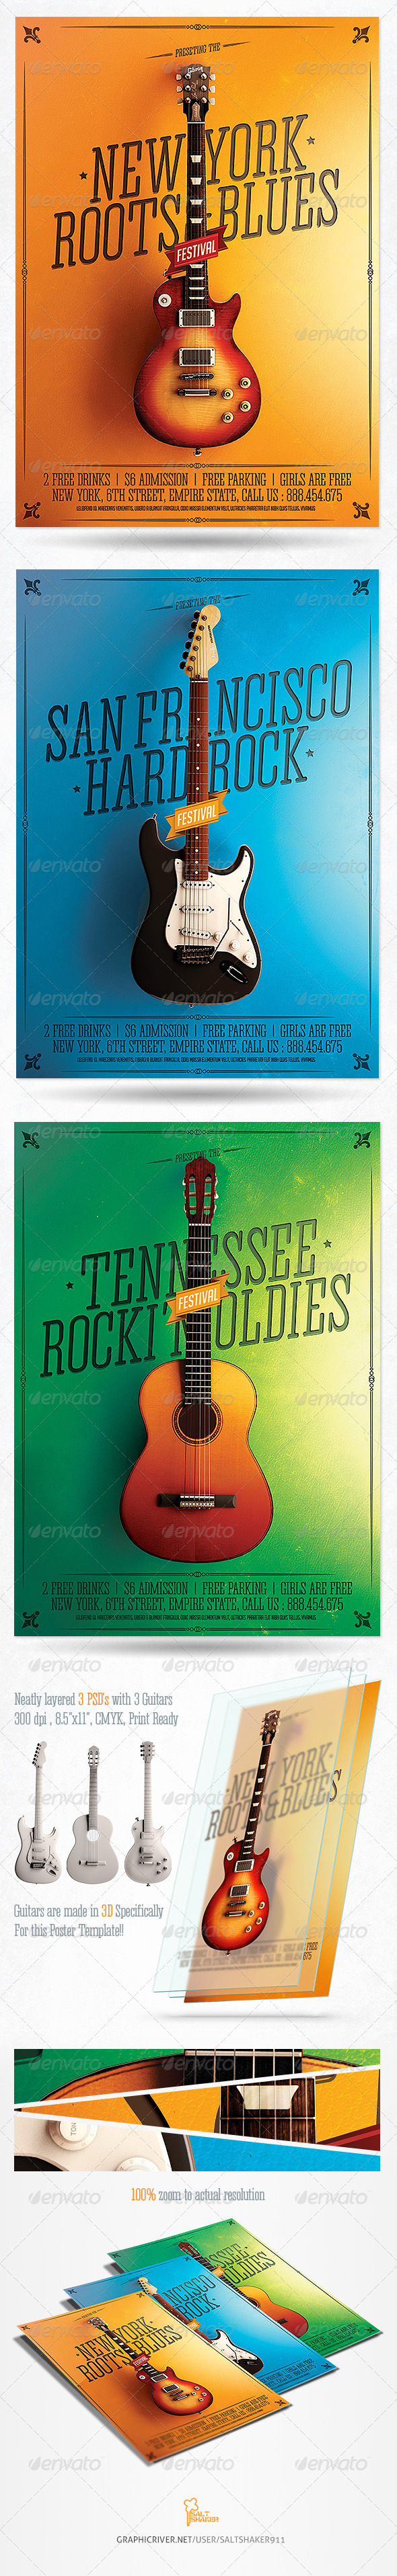 GraphicRiver Minimal Rock Festival Poster With 3 Guitars 8269230